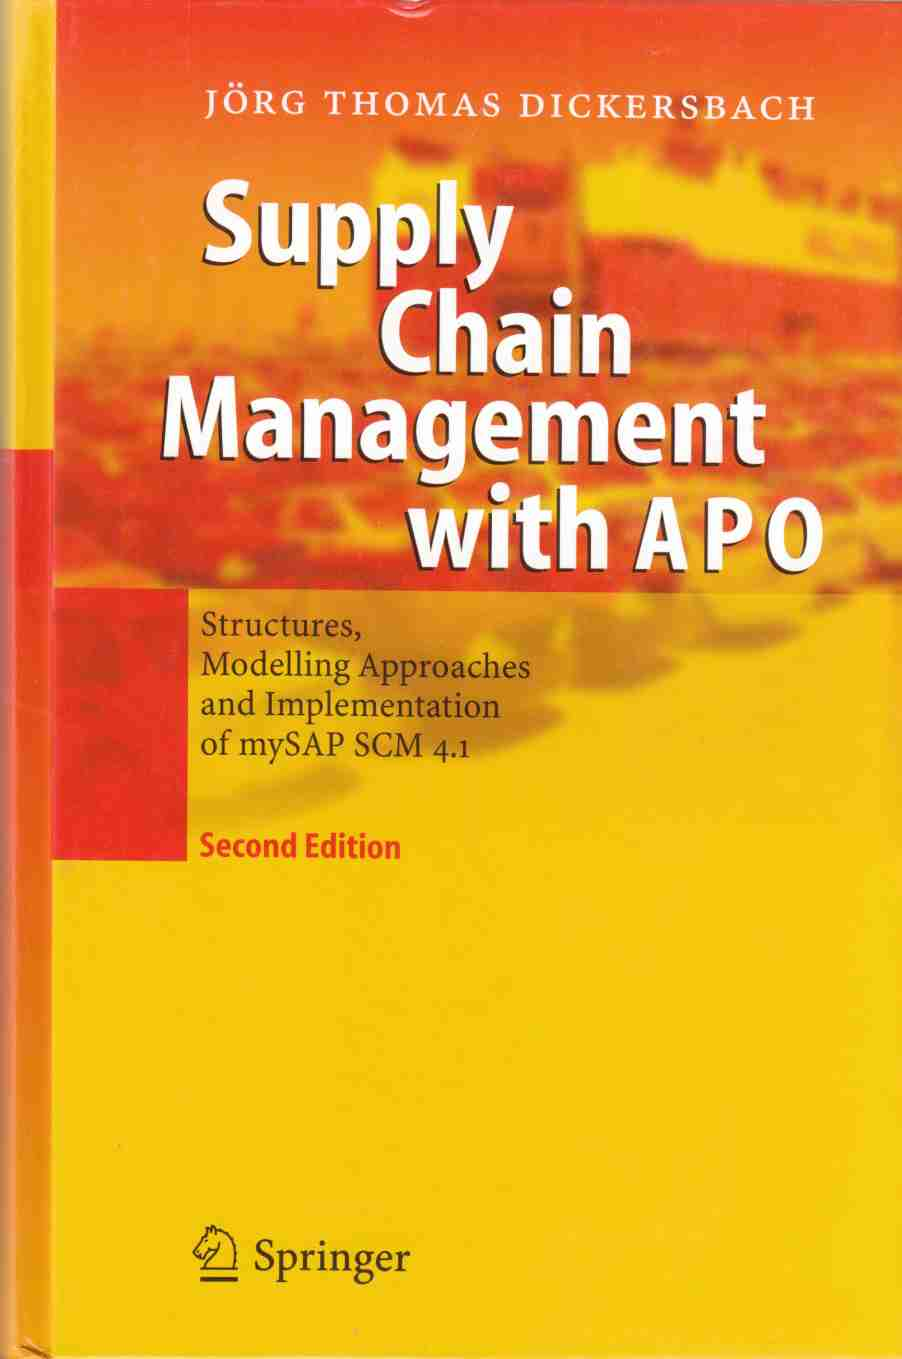 Image for Supply Chain Management with APO:  Structures, Modelling Approaches and Implementation of Mysap SCM 4.1 Second Edition